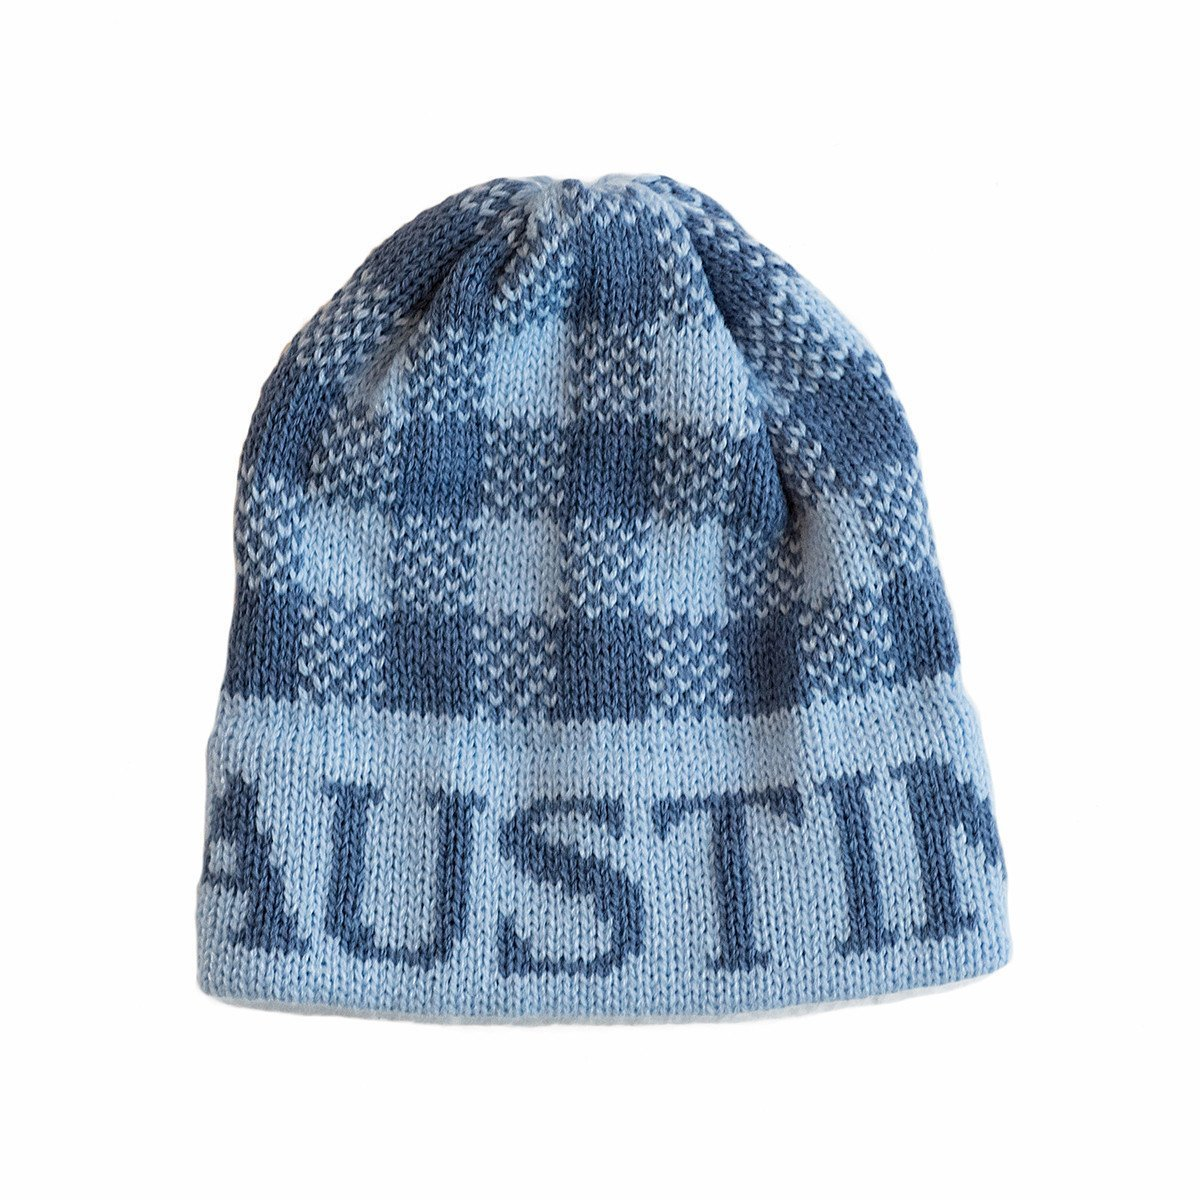 Gingham Personalized Knit Hat-Hats-Jack and Jill Boutique